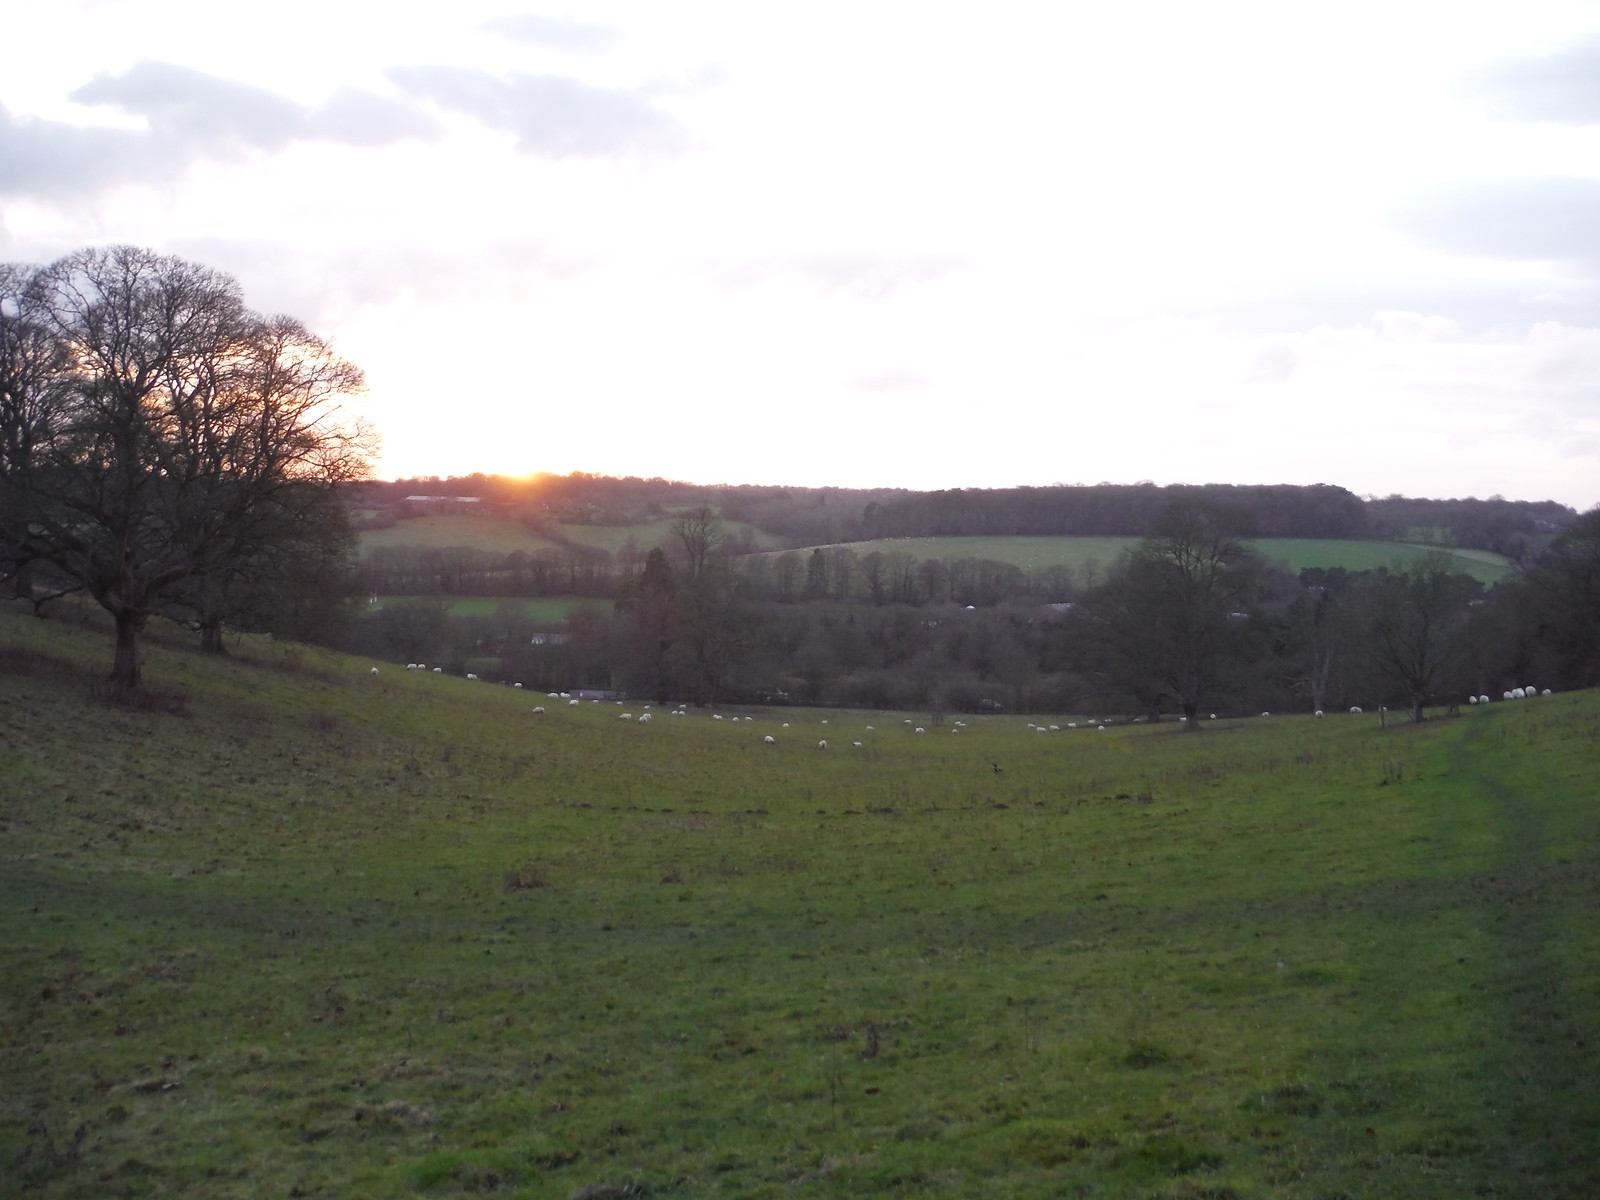 Sunset Chalkdell Wood, Great Missenden SWC Walk 140a Wendover to Great Missenden